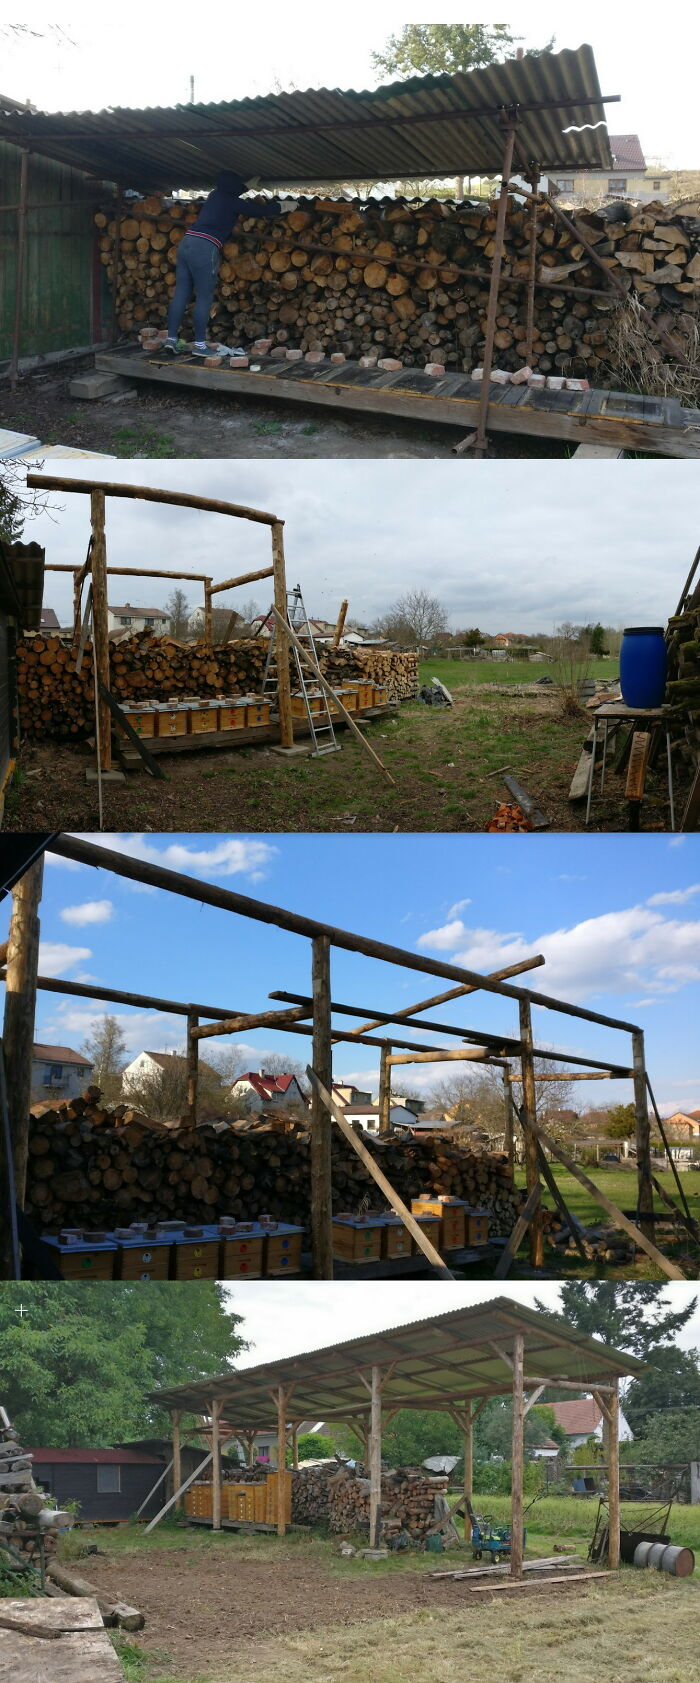 Remake Of Temporary Bee And Firewood Shelter. All Built Only With Hand Tools And Chainsaw.